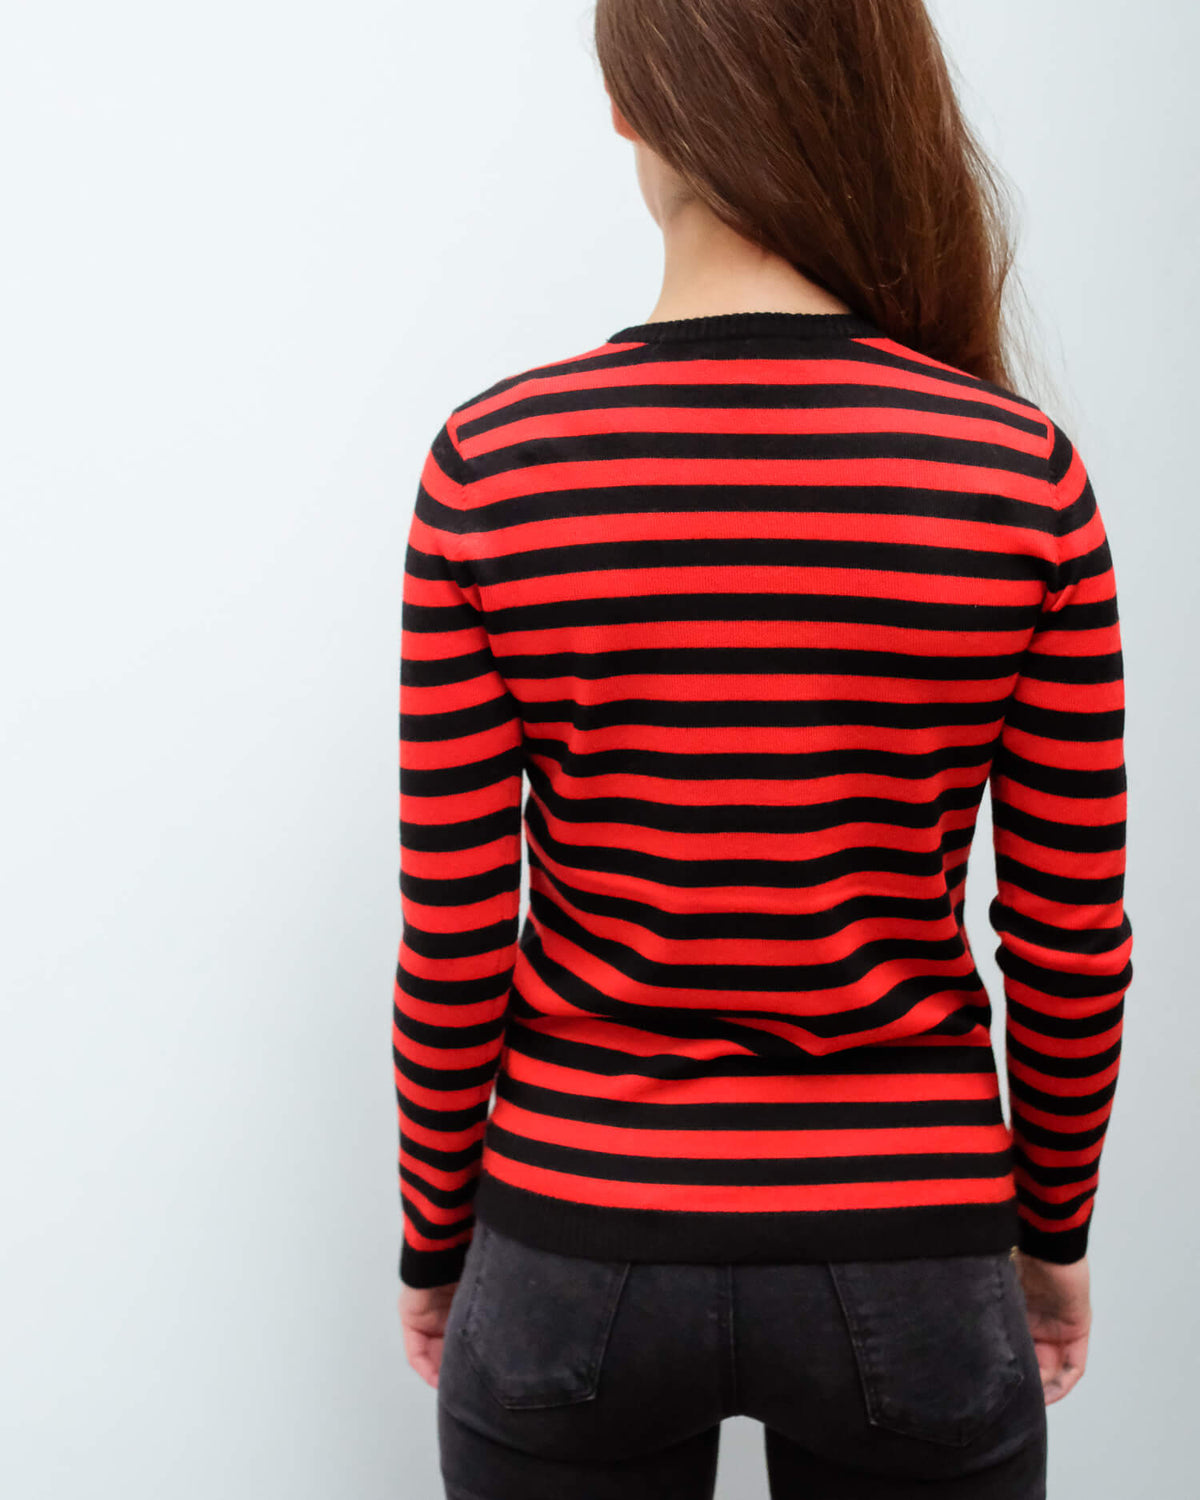 BF 1970 Striped jumper in red